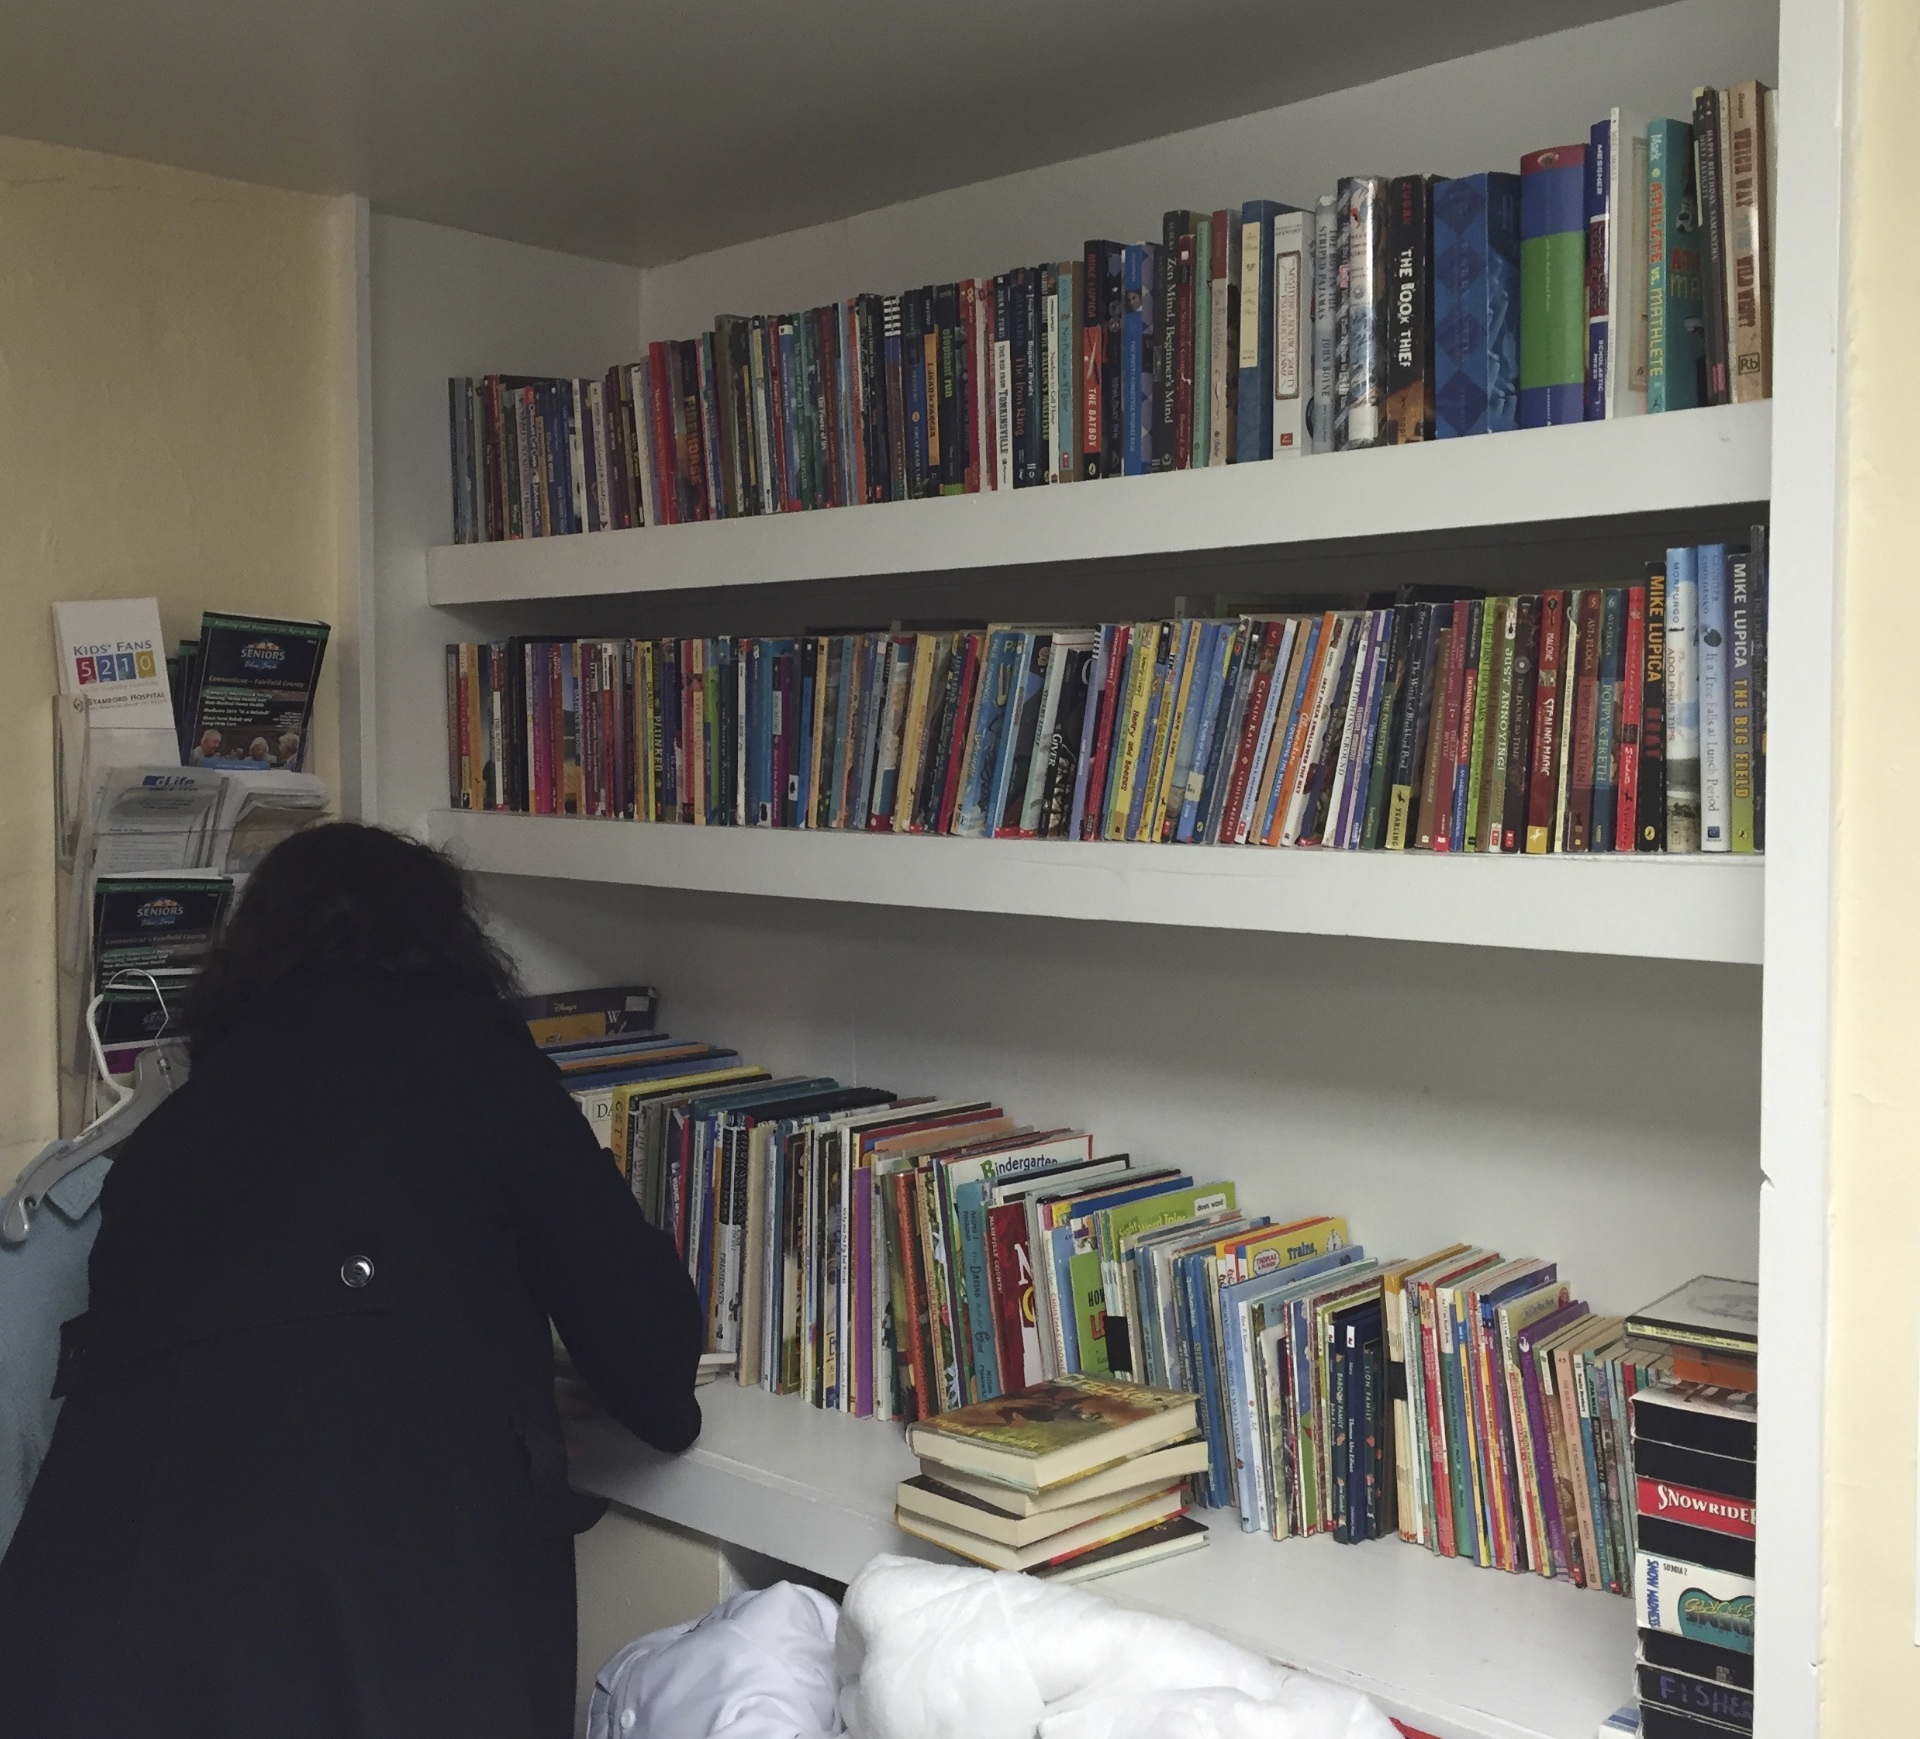 Our children's bookshelf